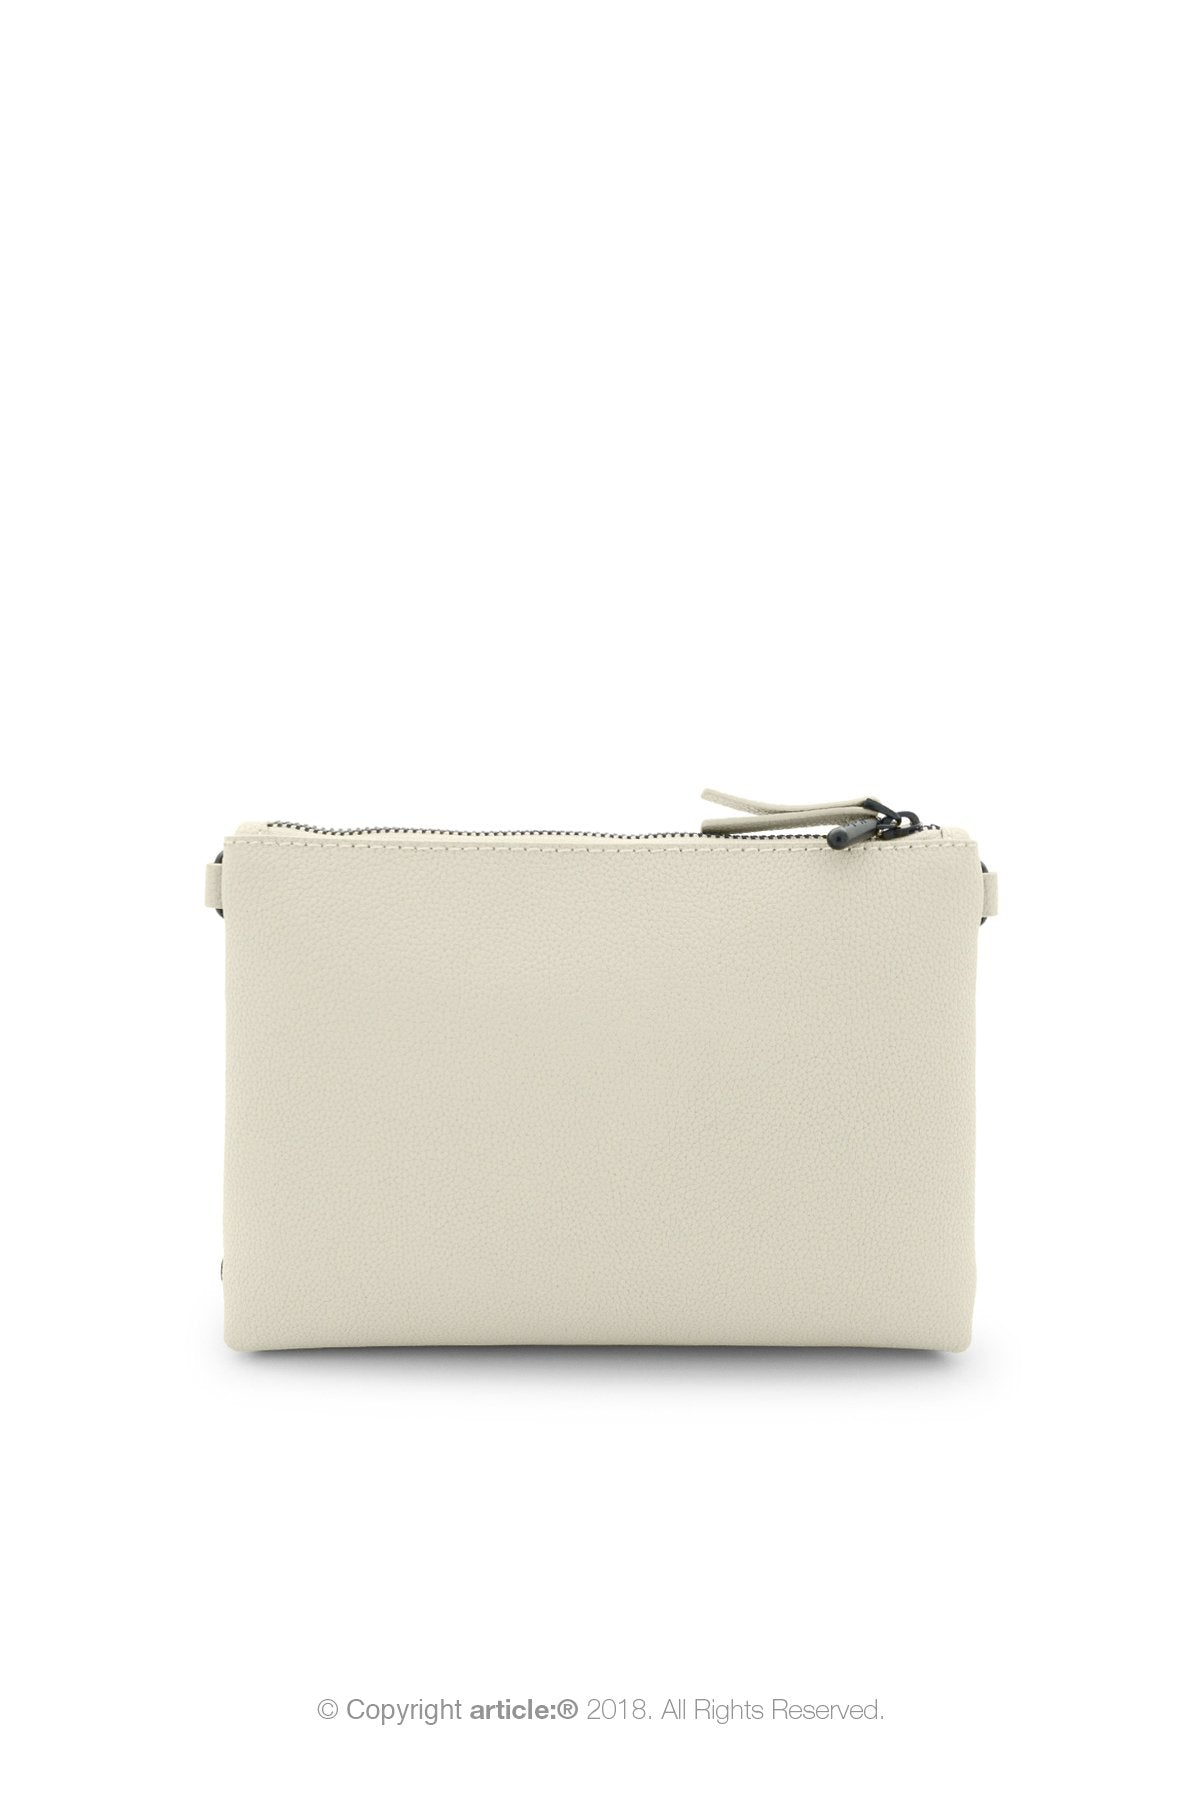 article: #007 Pochette Gusset - Oyster